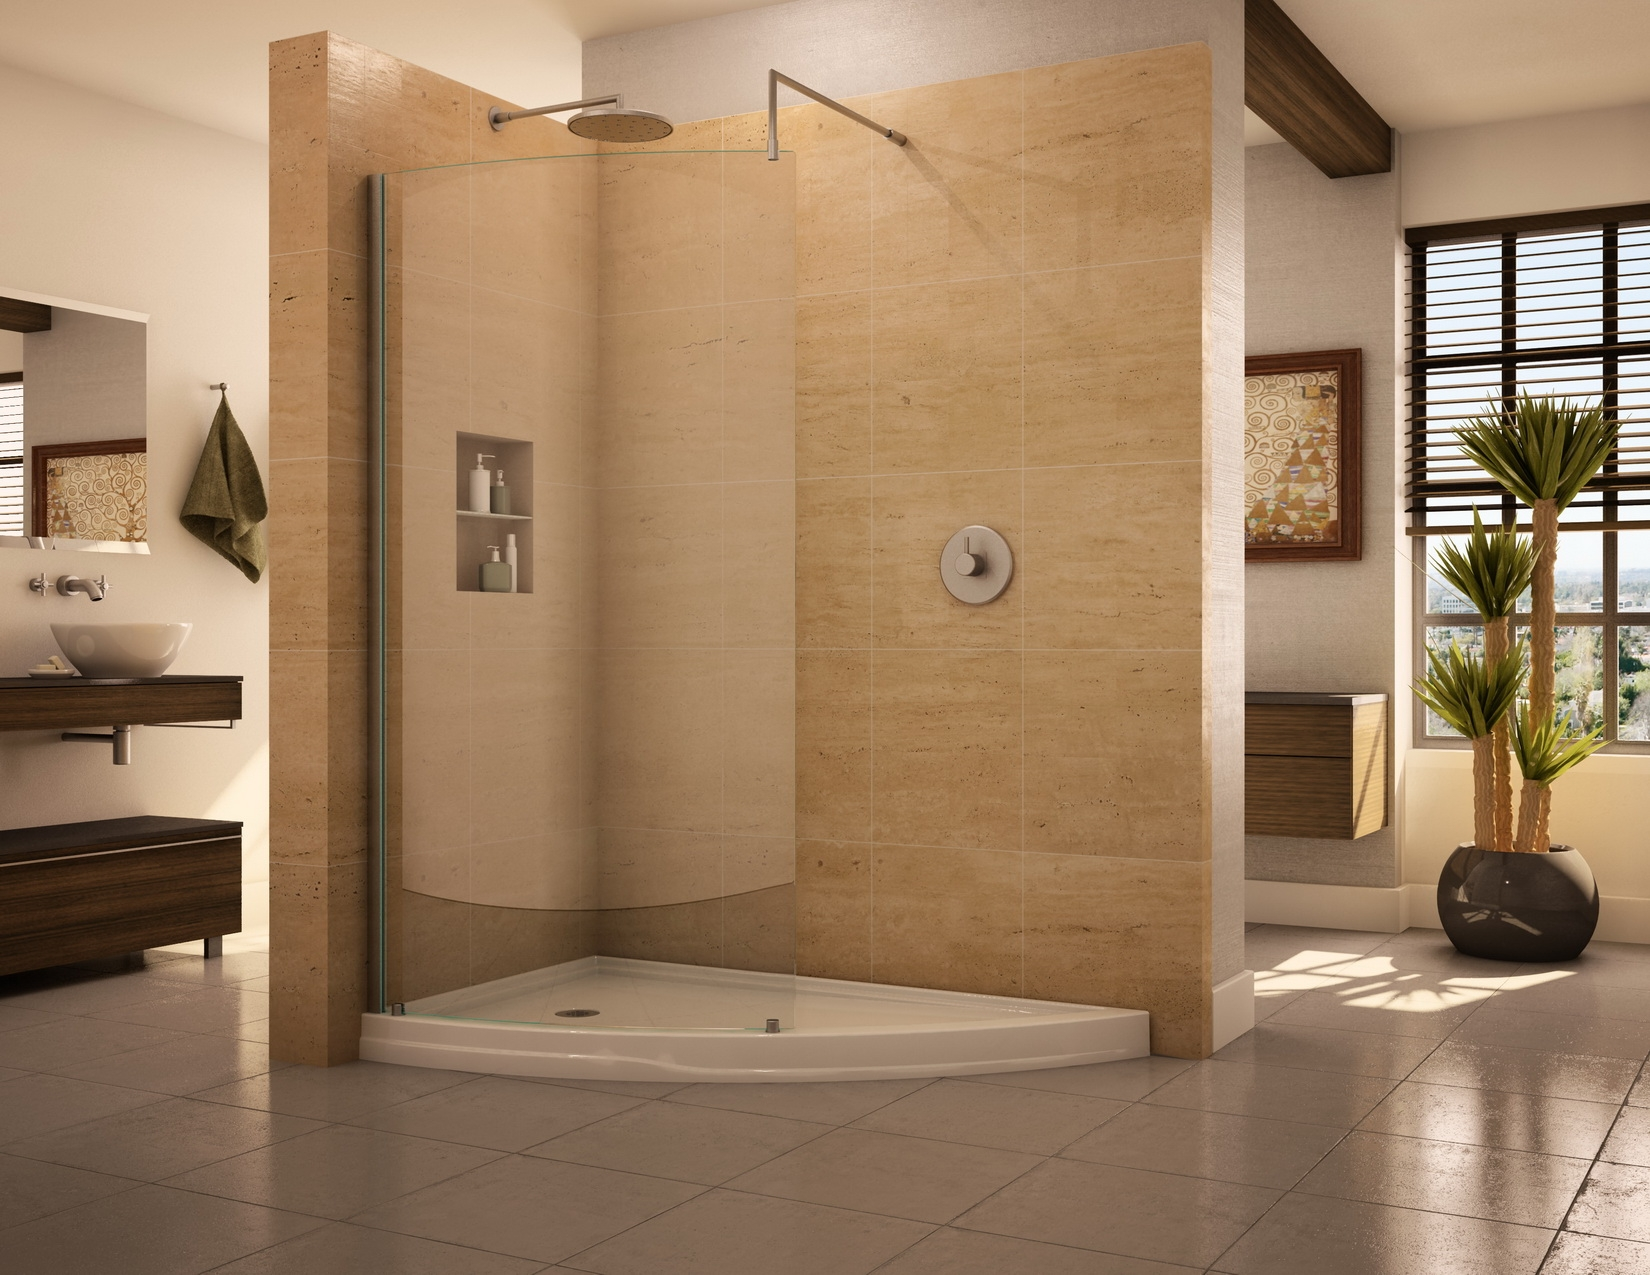 Doorless shower designs teach you how to go with the flow for Bathtub and shower designs